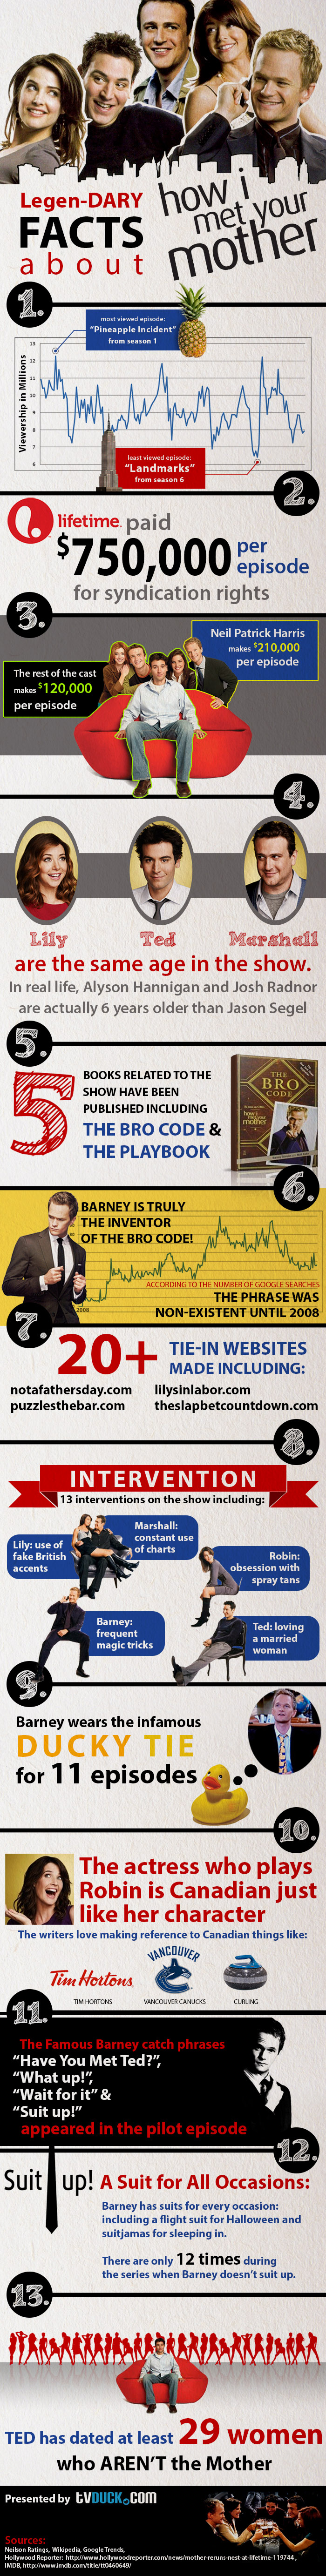 How I Met Your Mother infographic